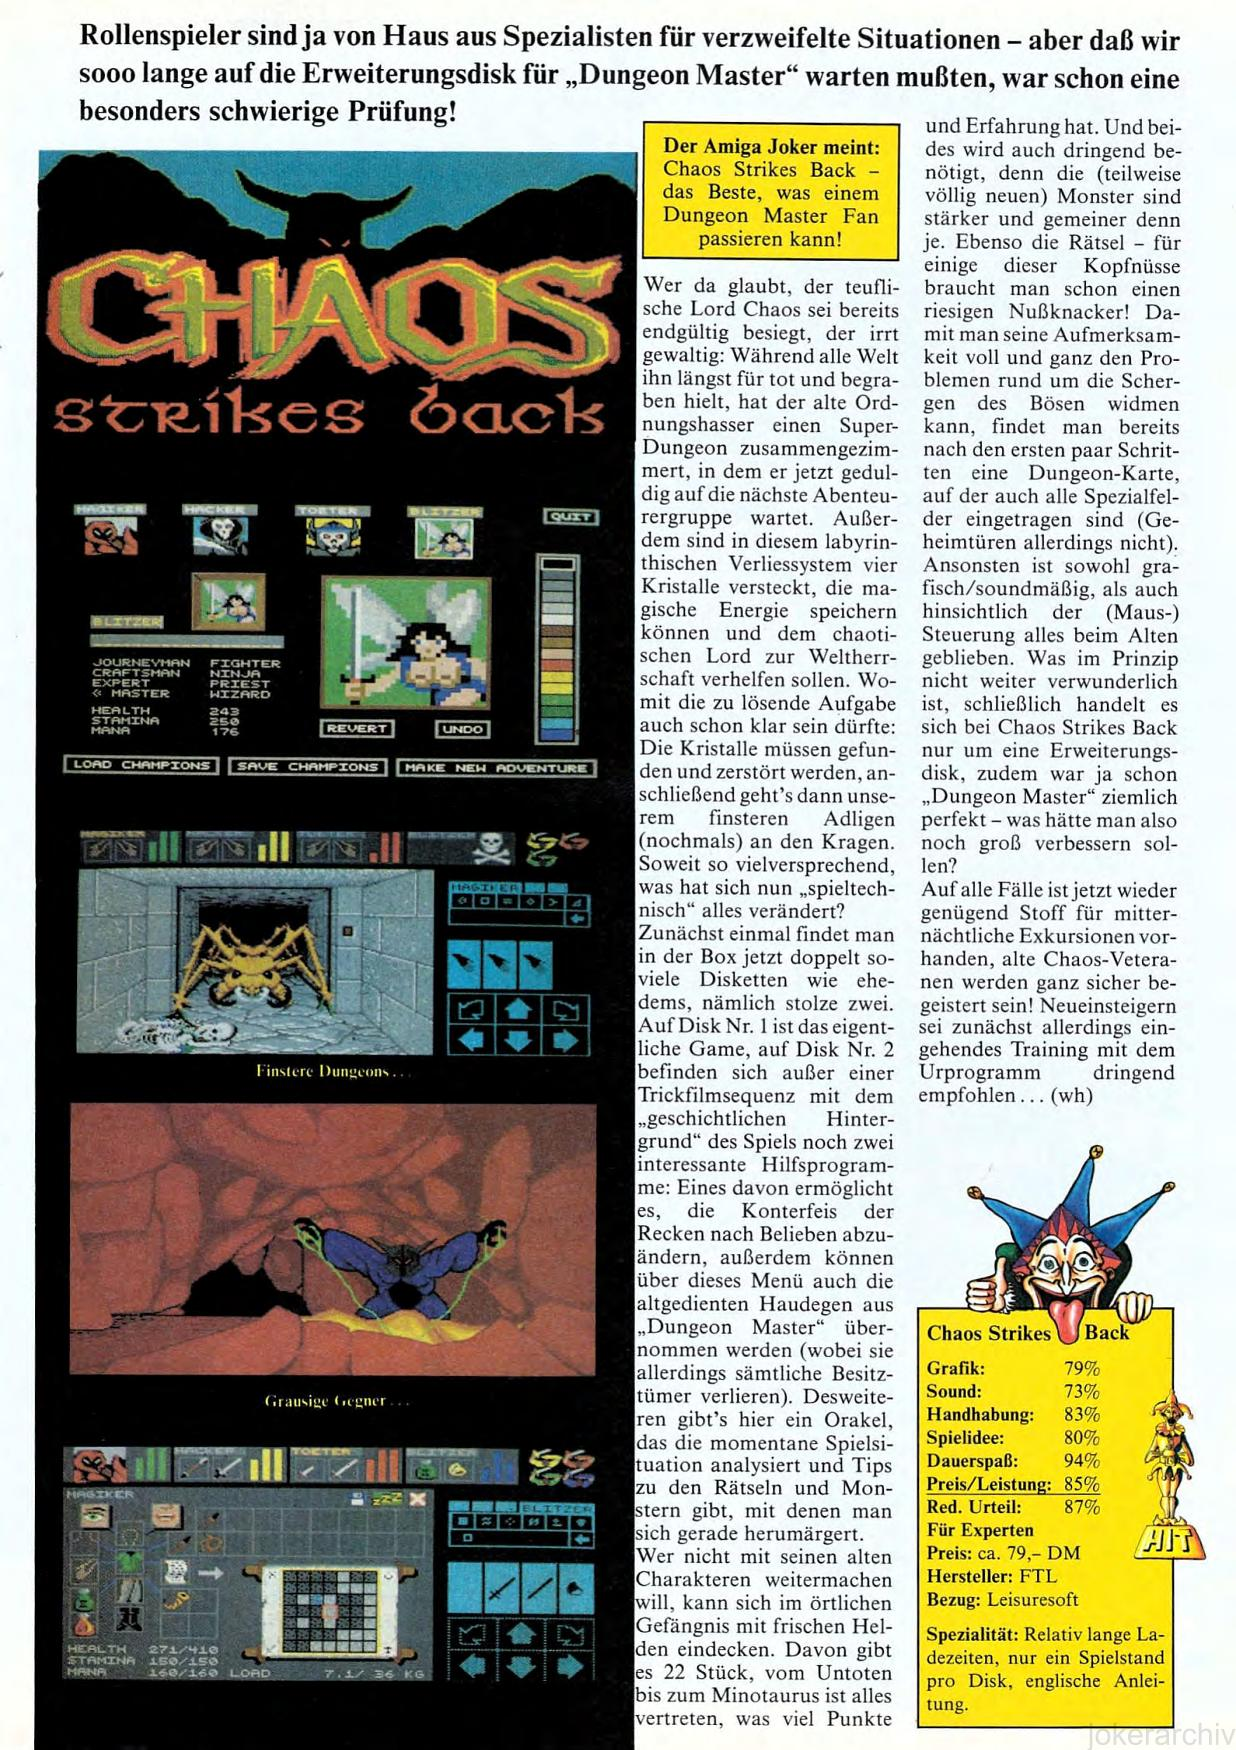 Chaos Strikes Back for Amiga Review published in German magazine 'Amiga Joker', February 1991, Page 49